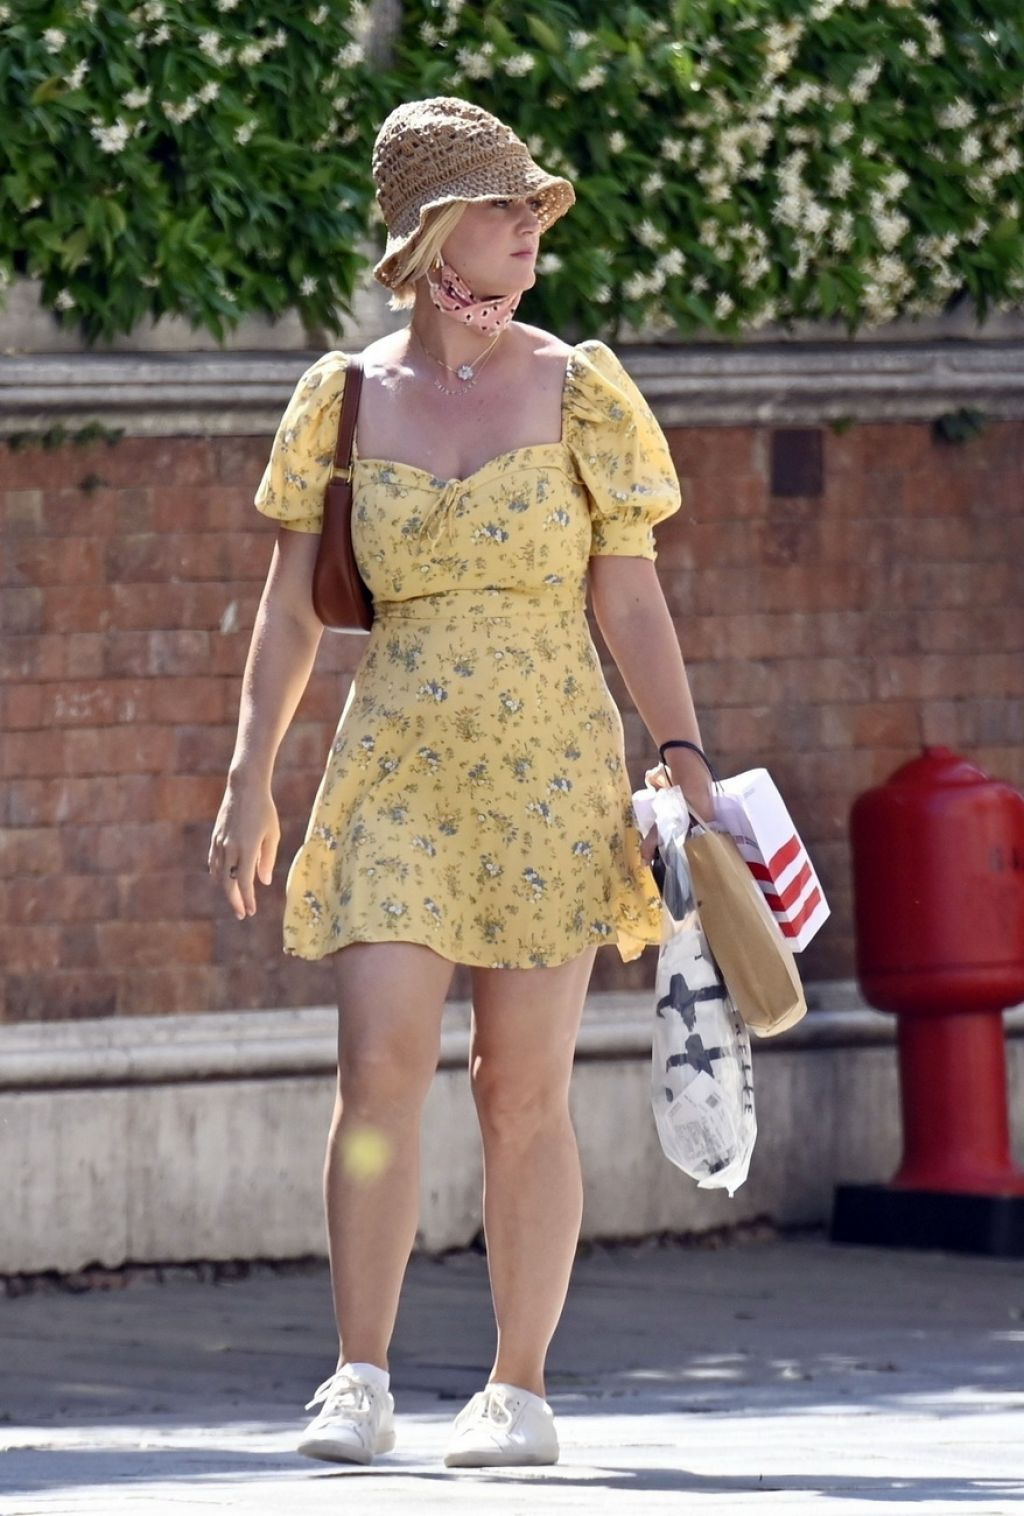 katy-perry-wore-reformation-dress-out-in-venice-06-14-2021